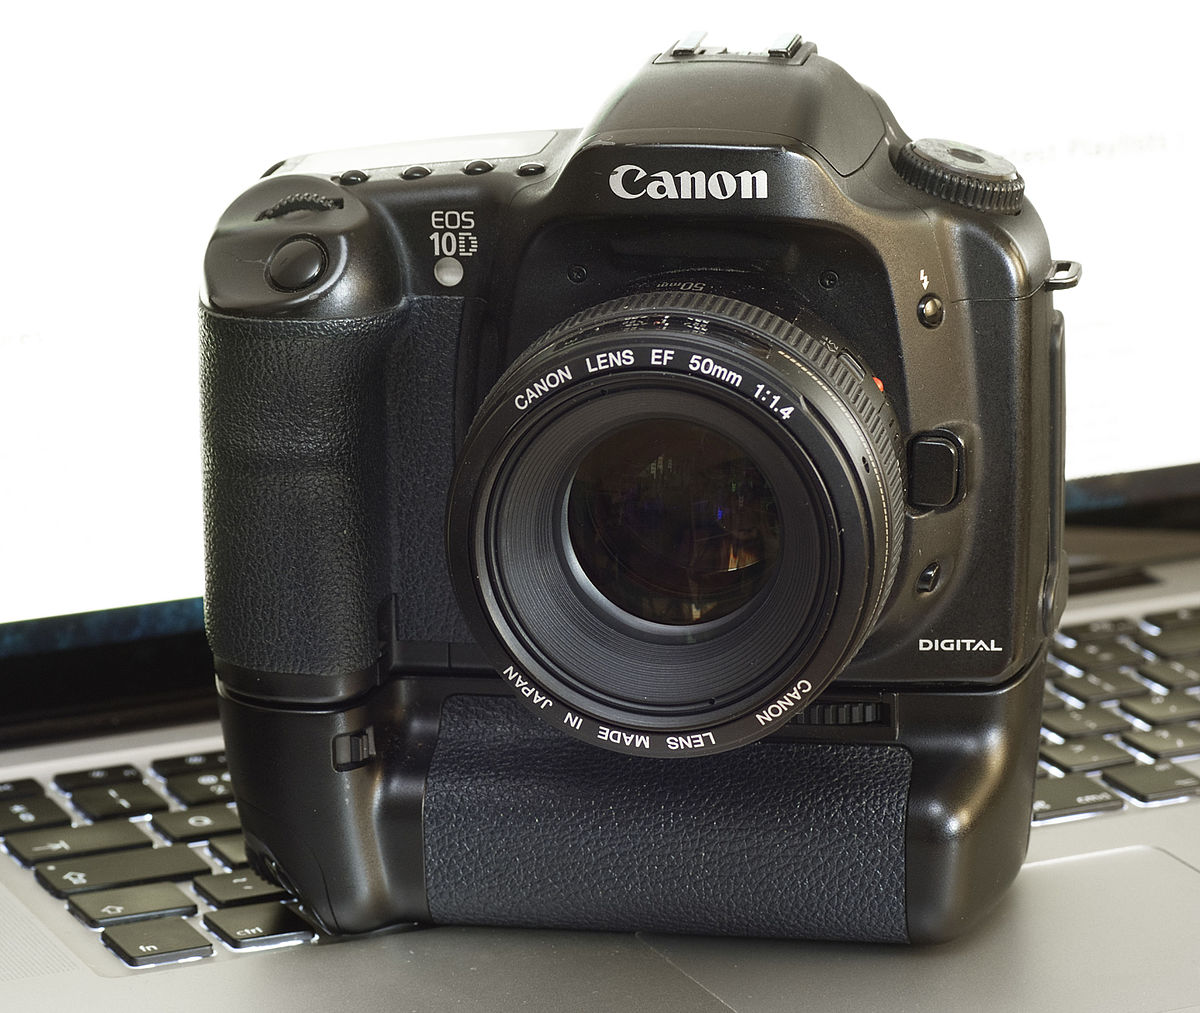 canon bg ed3 wikipedia rh en wikipedia org canon eos10d manual canon eos 100d manual download